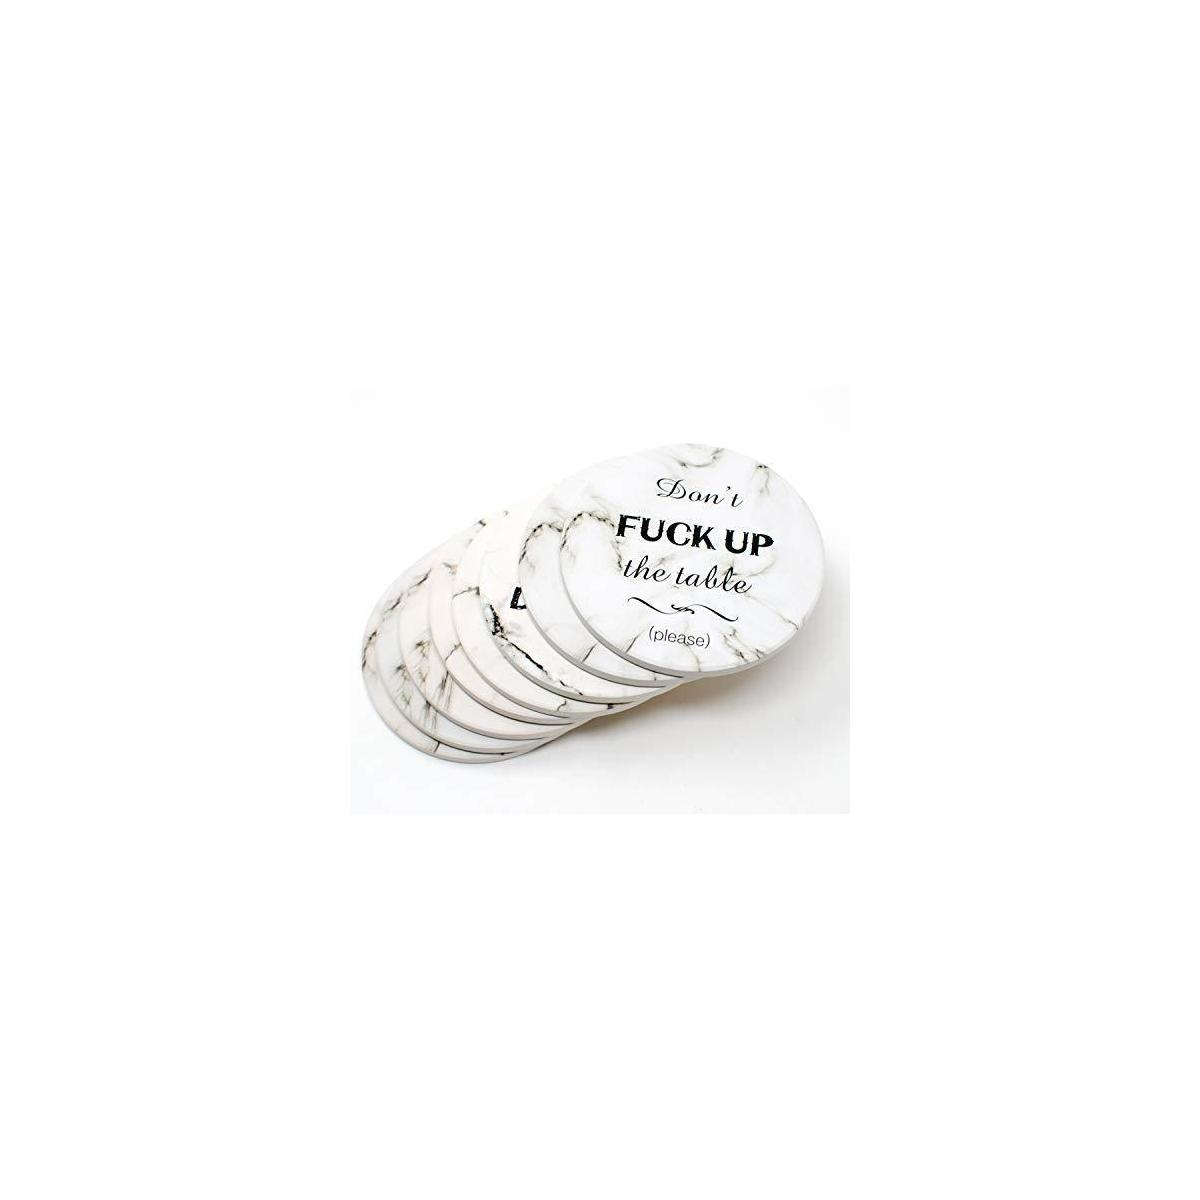 8 Pieces Coasters for Drinks Absorbent Stone with Funny Saying